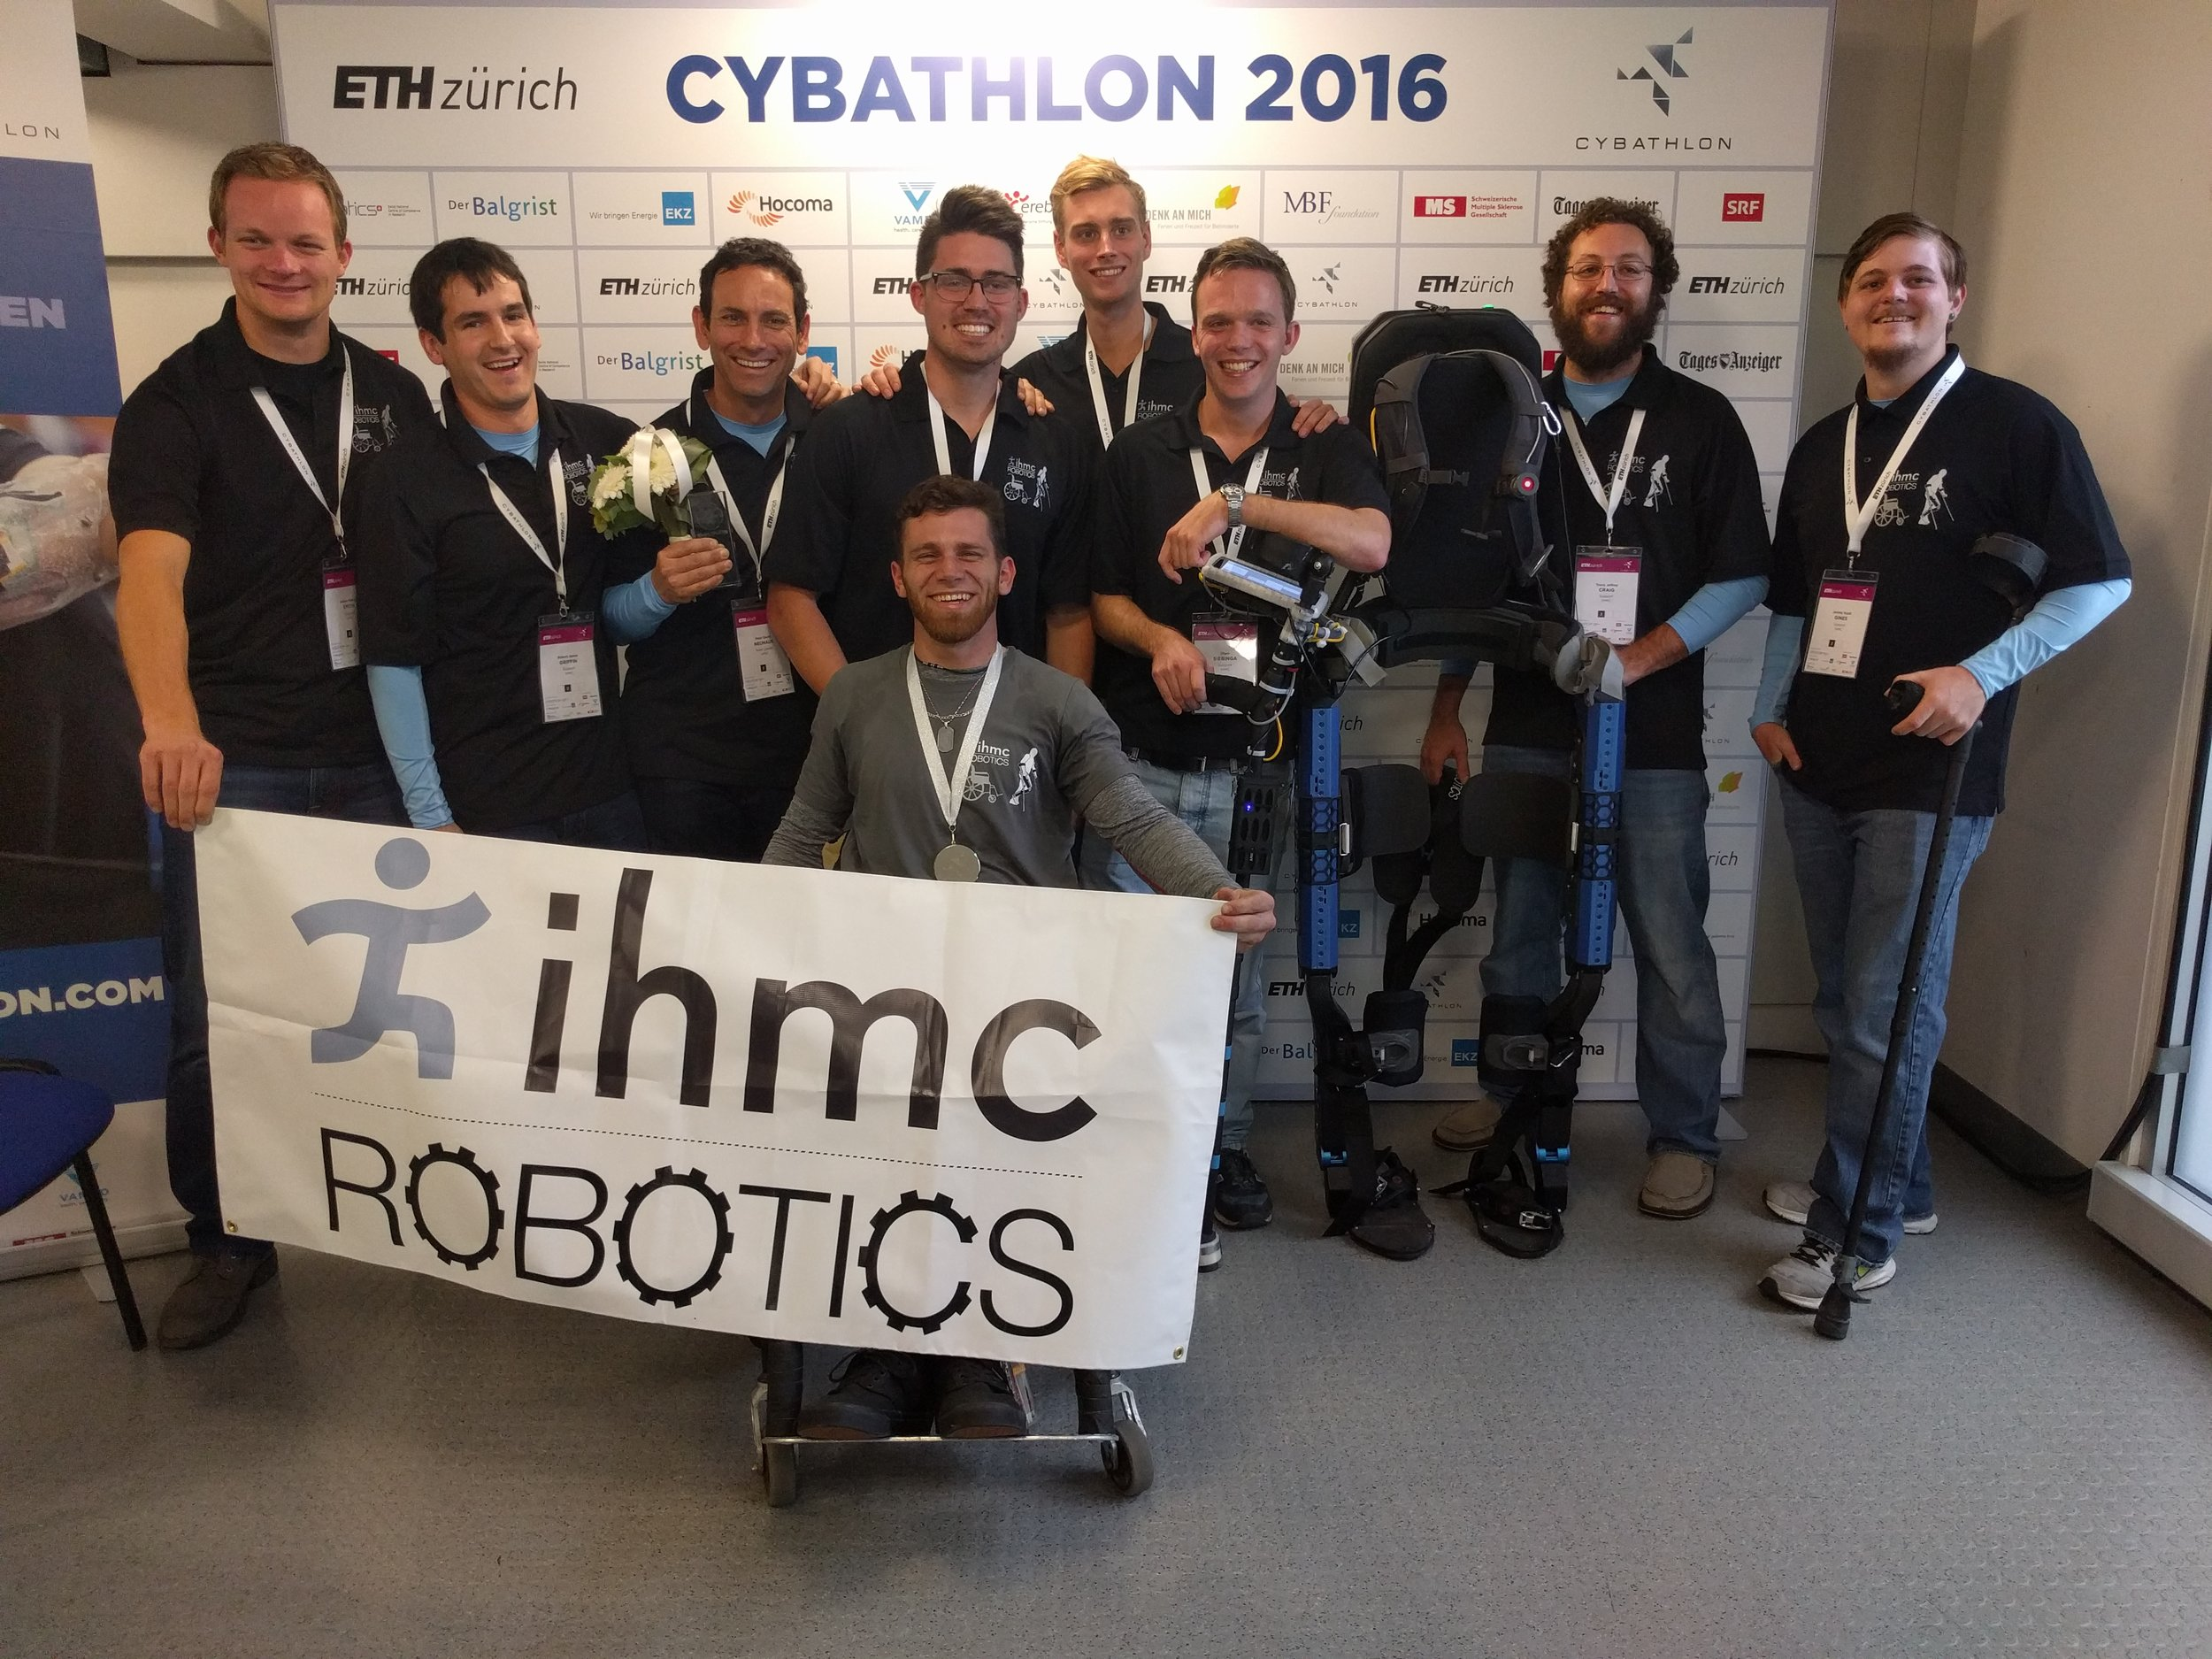 IHMC Robotics gets Silver Medal in Cybathlon